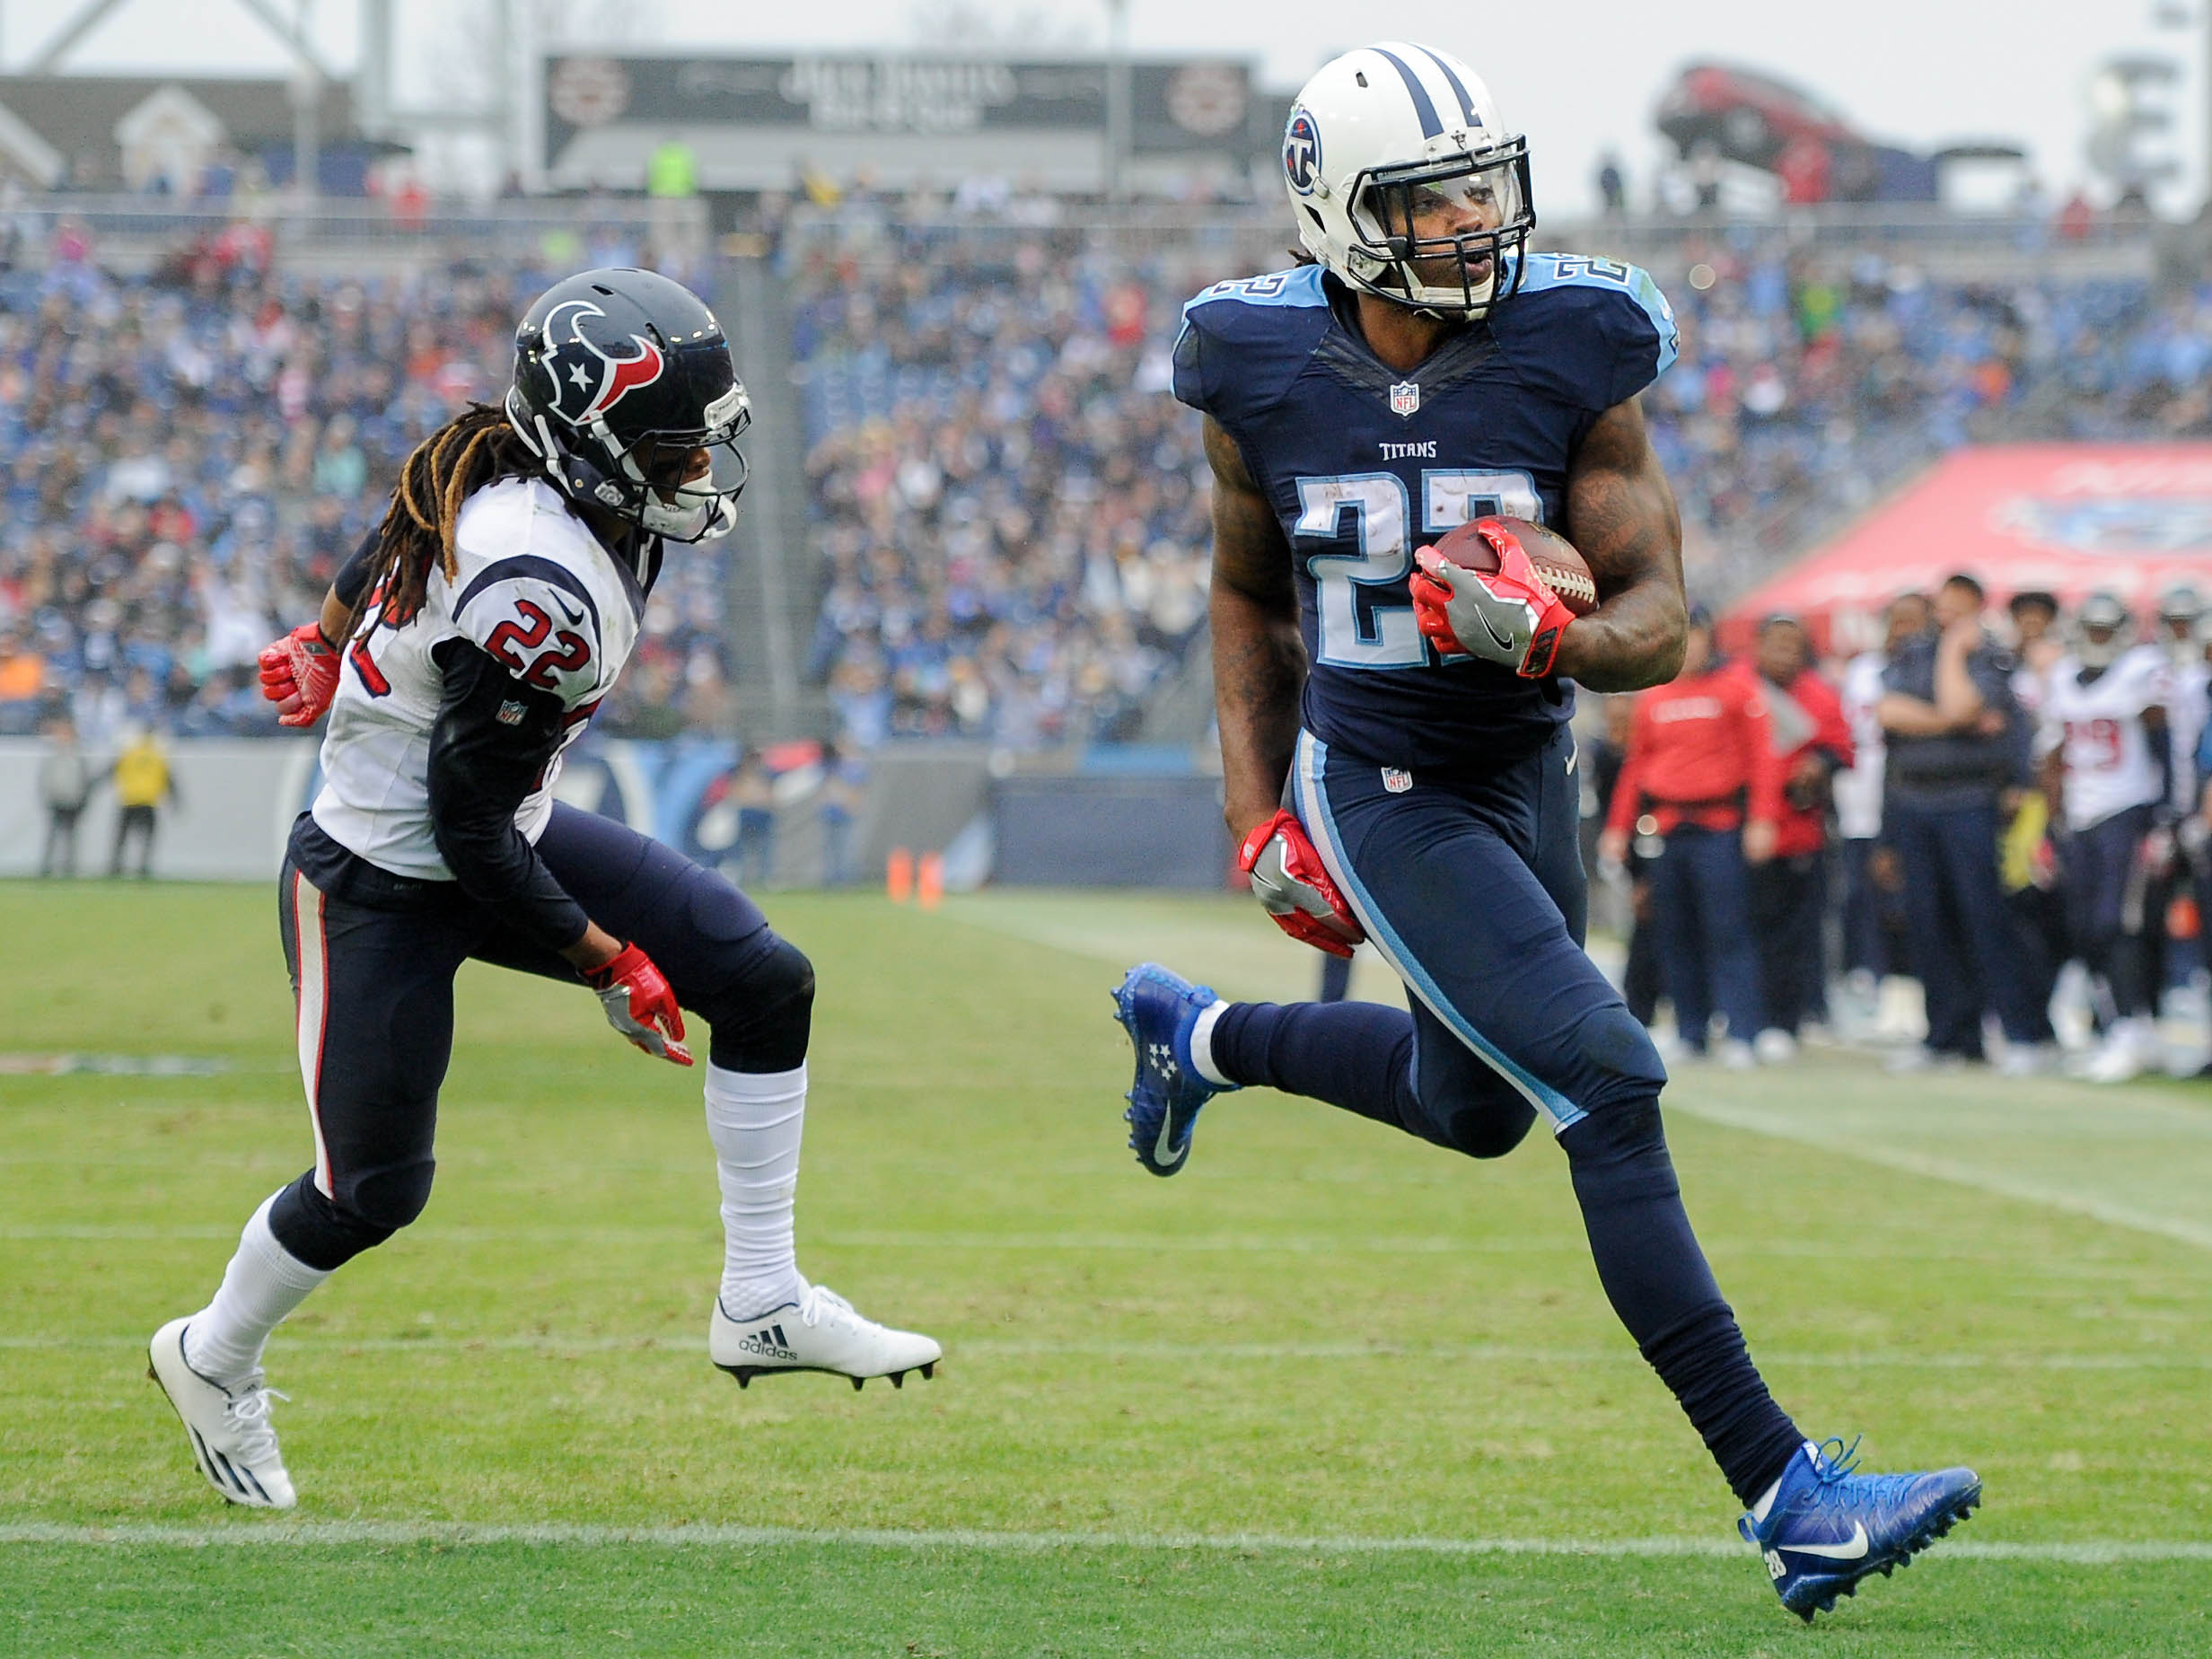 9782534-nfl-houston-texans-at-tennessee-titans